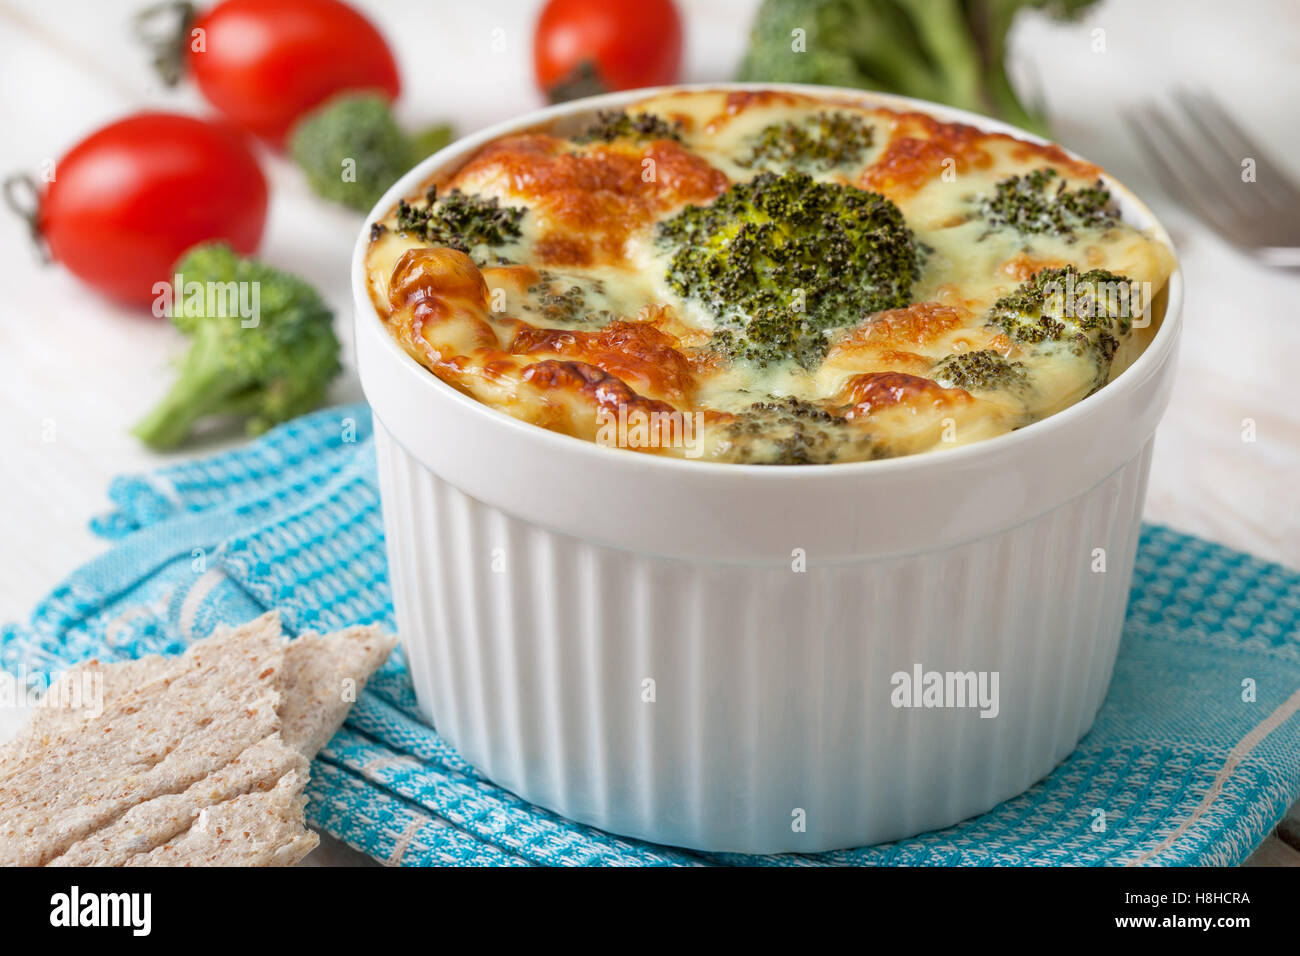 Healthy dietary breakfast. Broccoli casserole with eggs, cheese in a white bowl, fresh tomatoes, crisp bread on - Stock Image